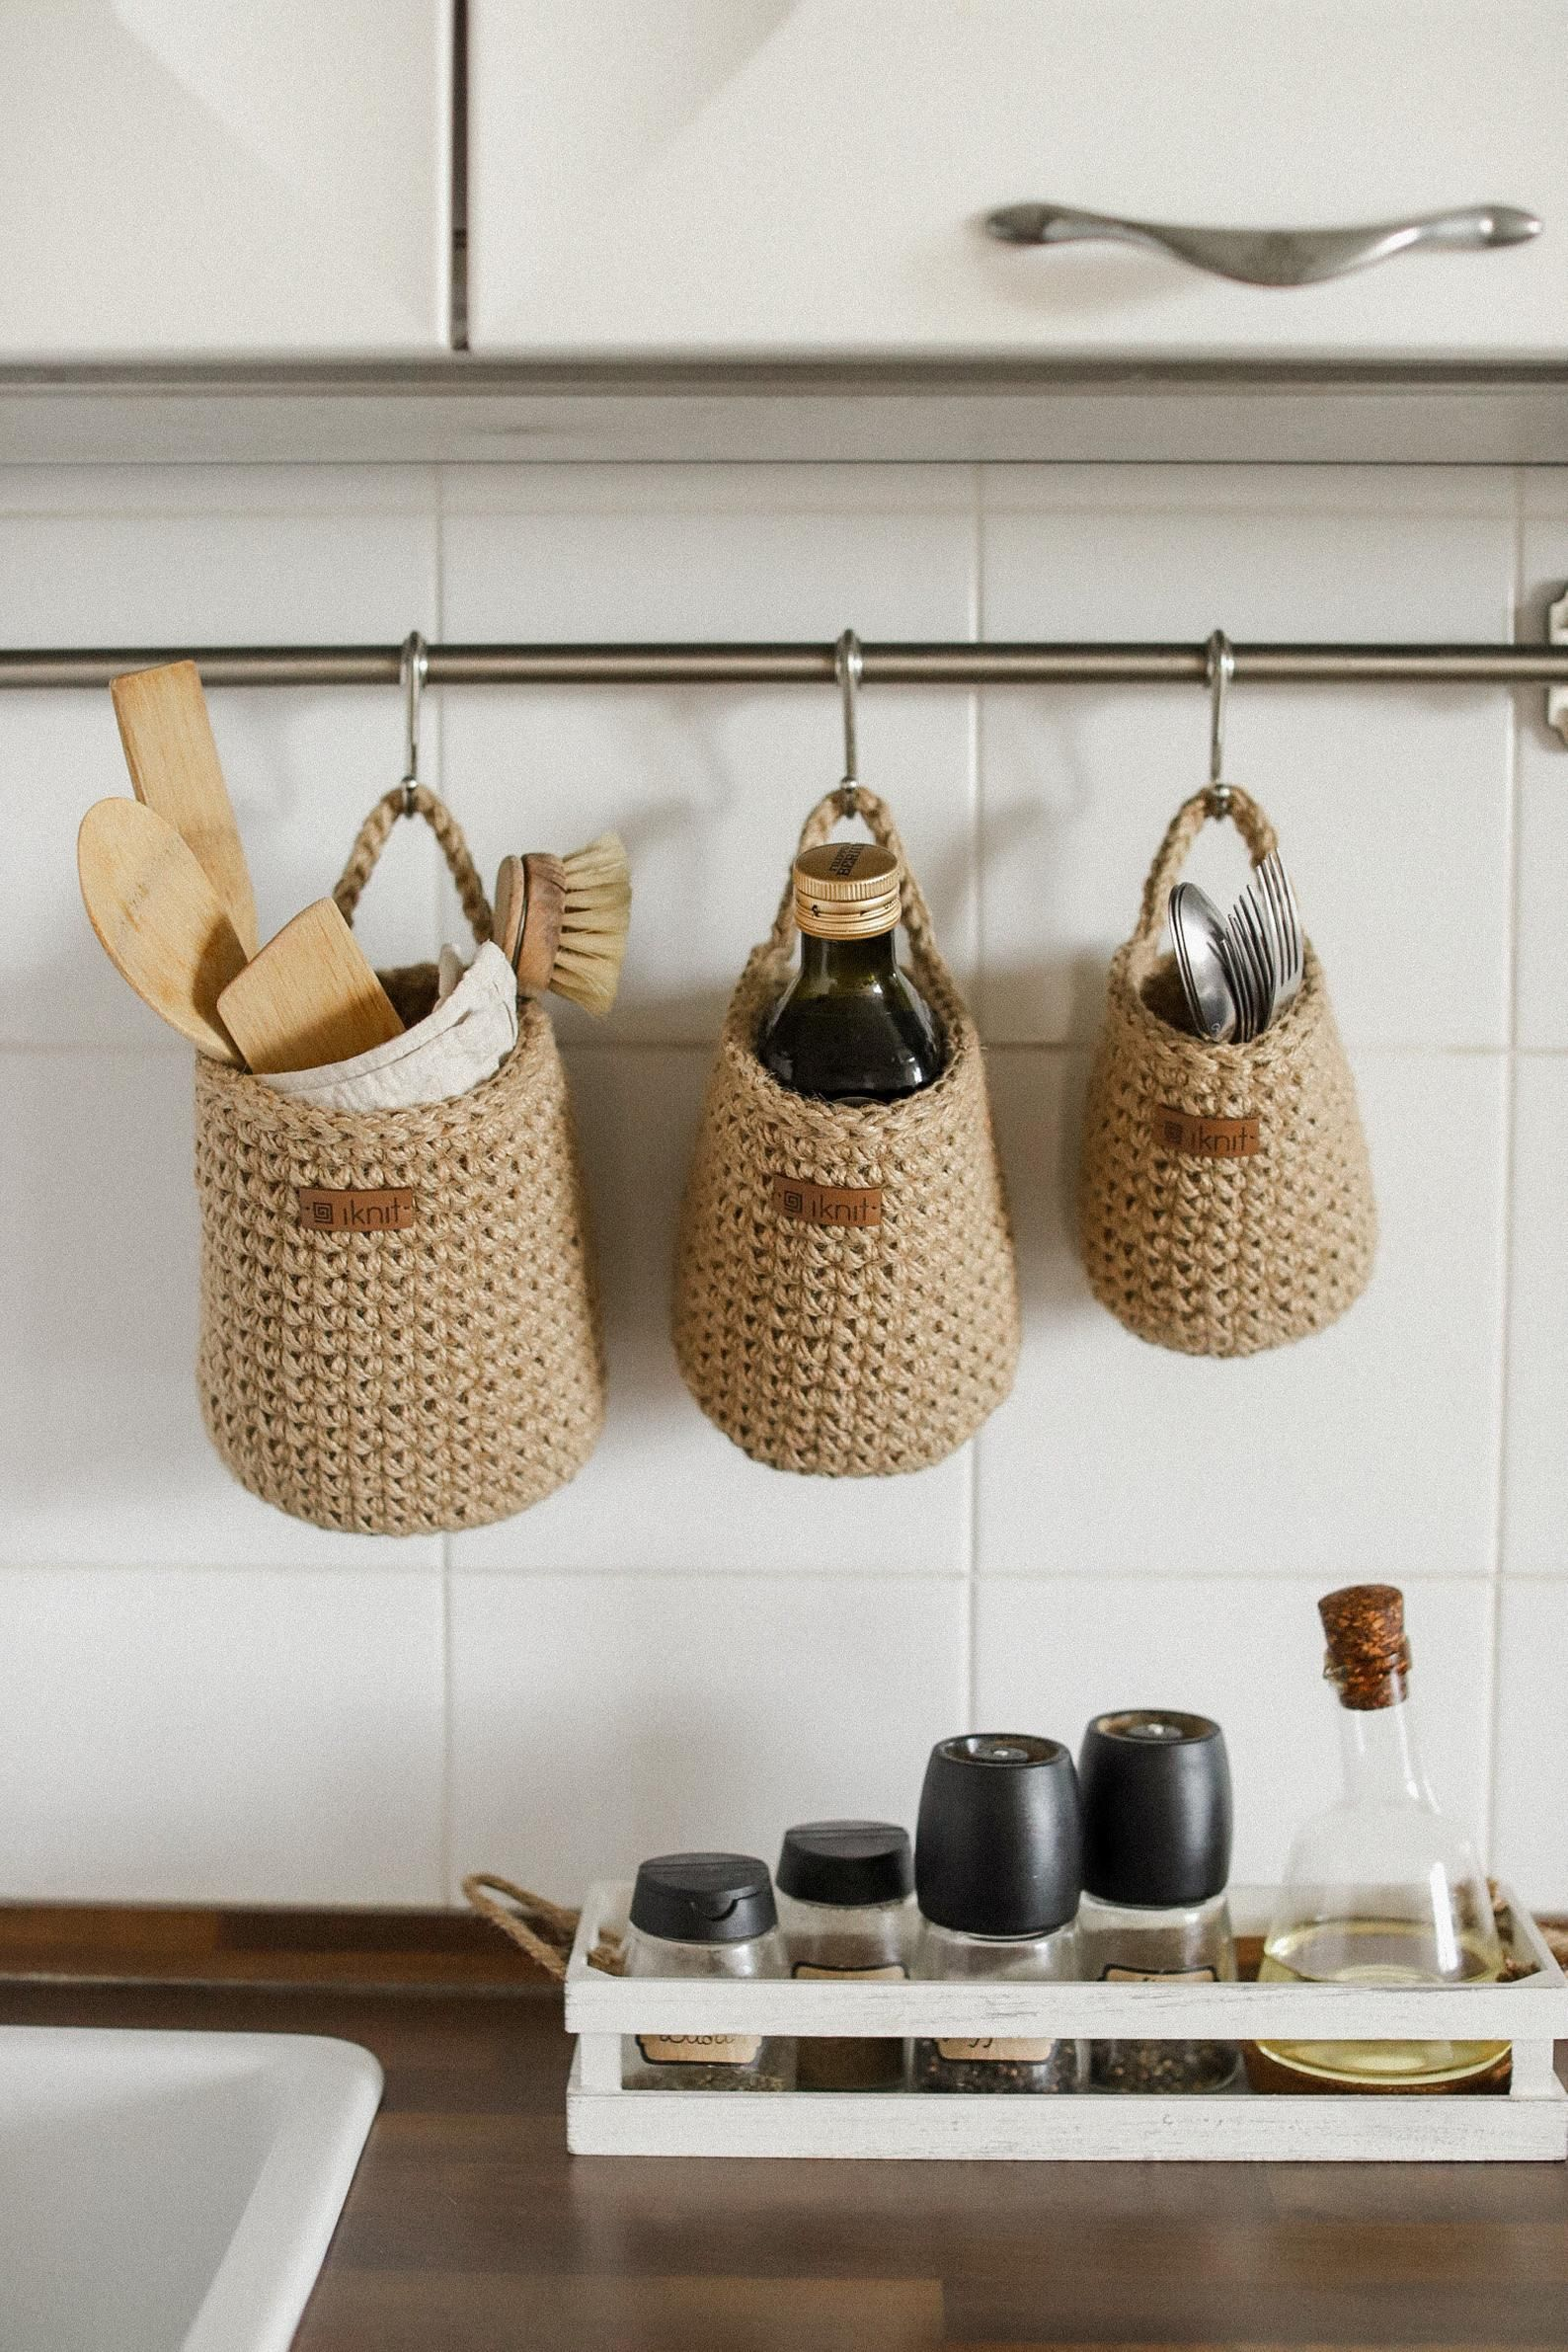 Crochet Jute Baskets Set 3 Storage Baskets Wall Hanging Etsy In 2020 Hanging Basket Storage Jute Basket Wall Hanging Storage